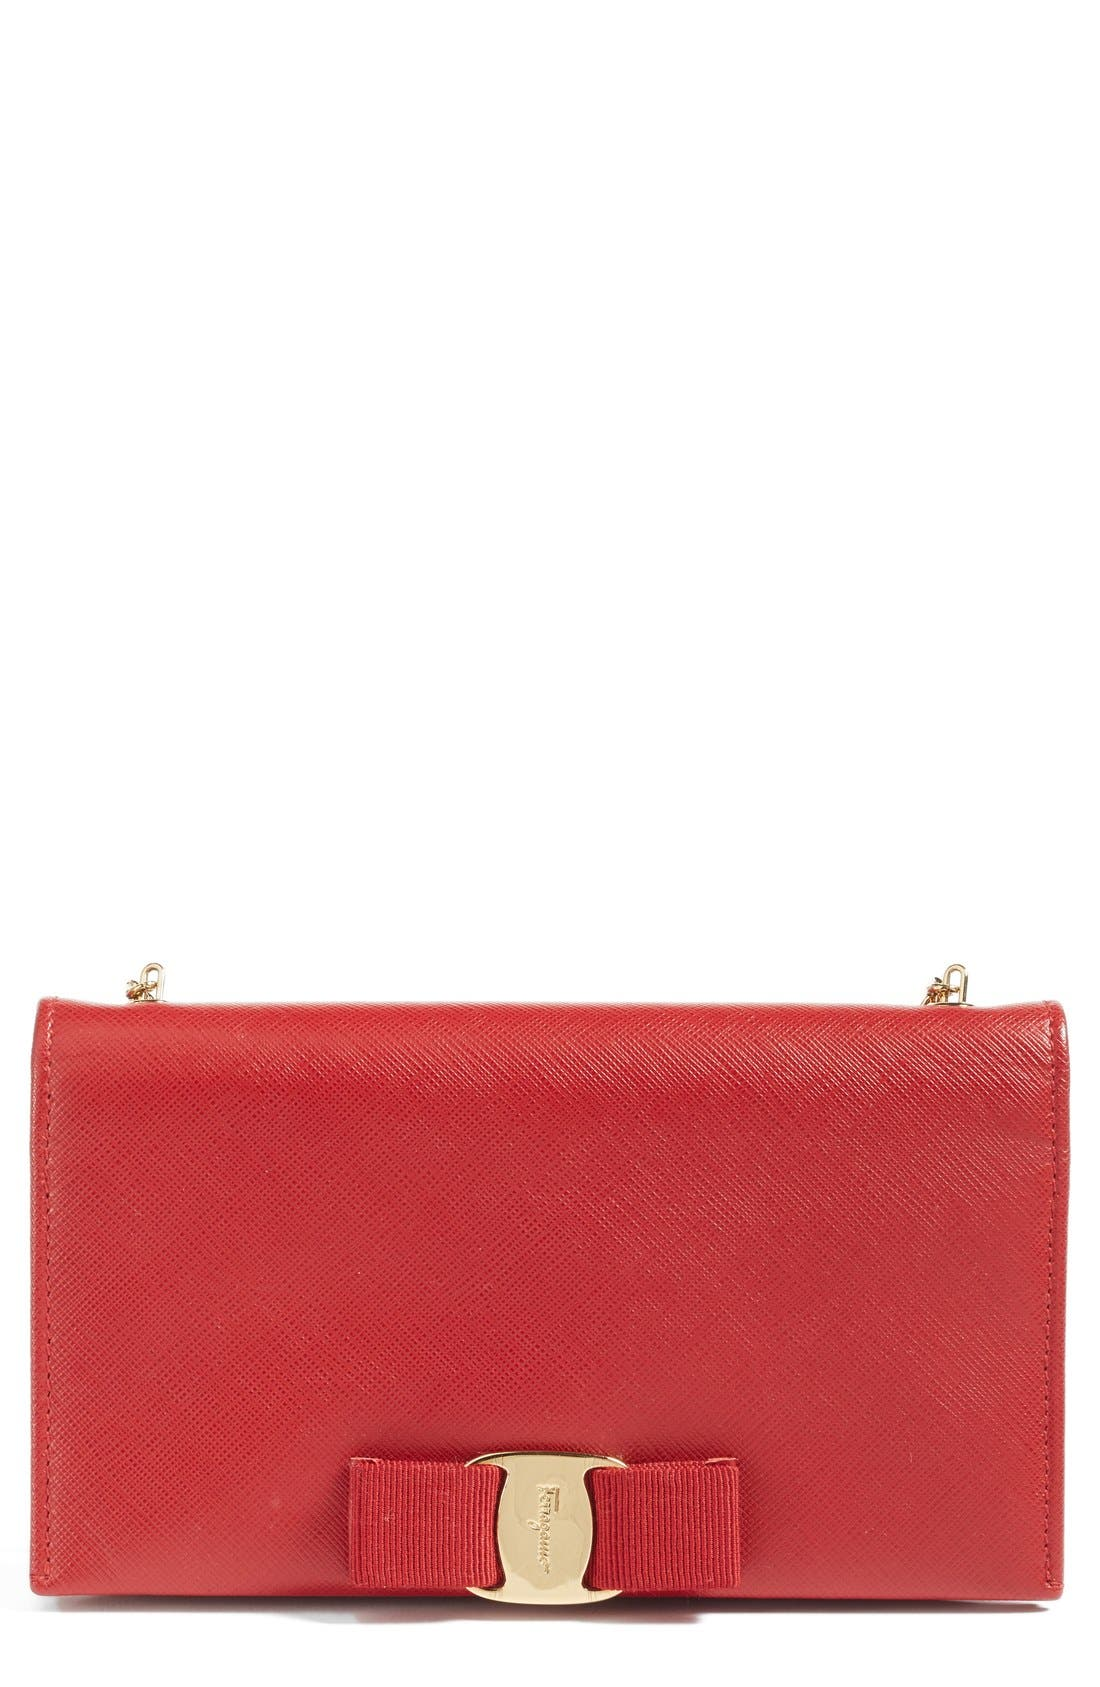 Alternate Image 1 Selected - Salavatore Ferragamo 'Miss Vara' Leather Wallet on a Chain